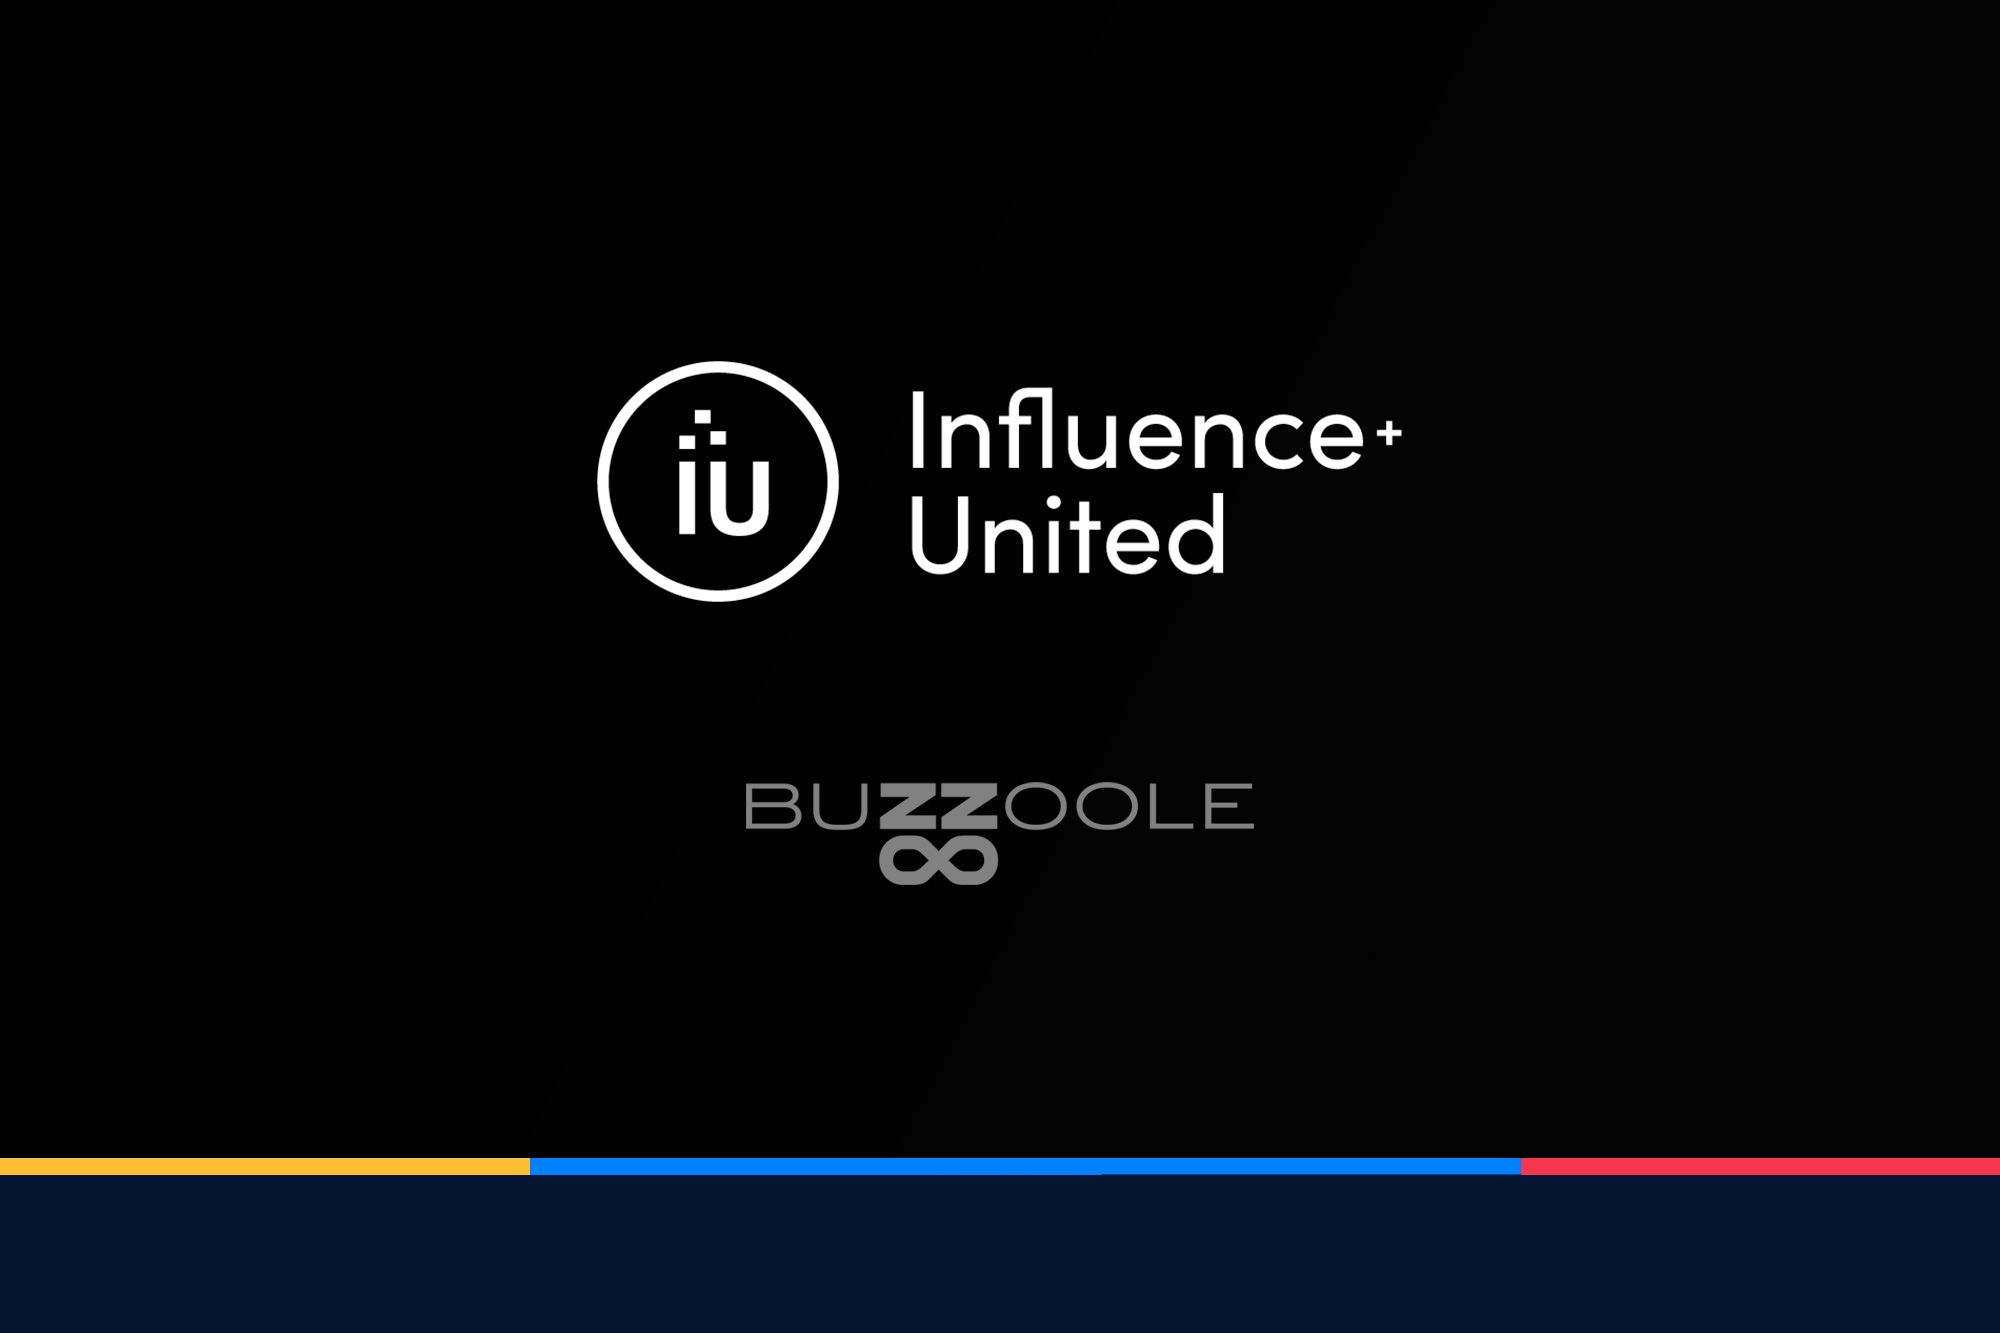 Influencer United Buzzoole background